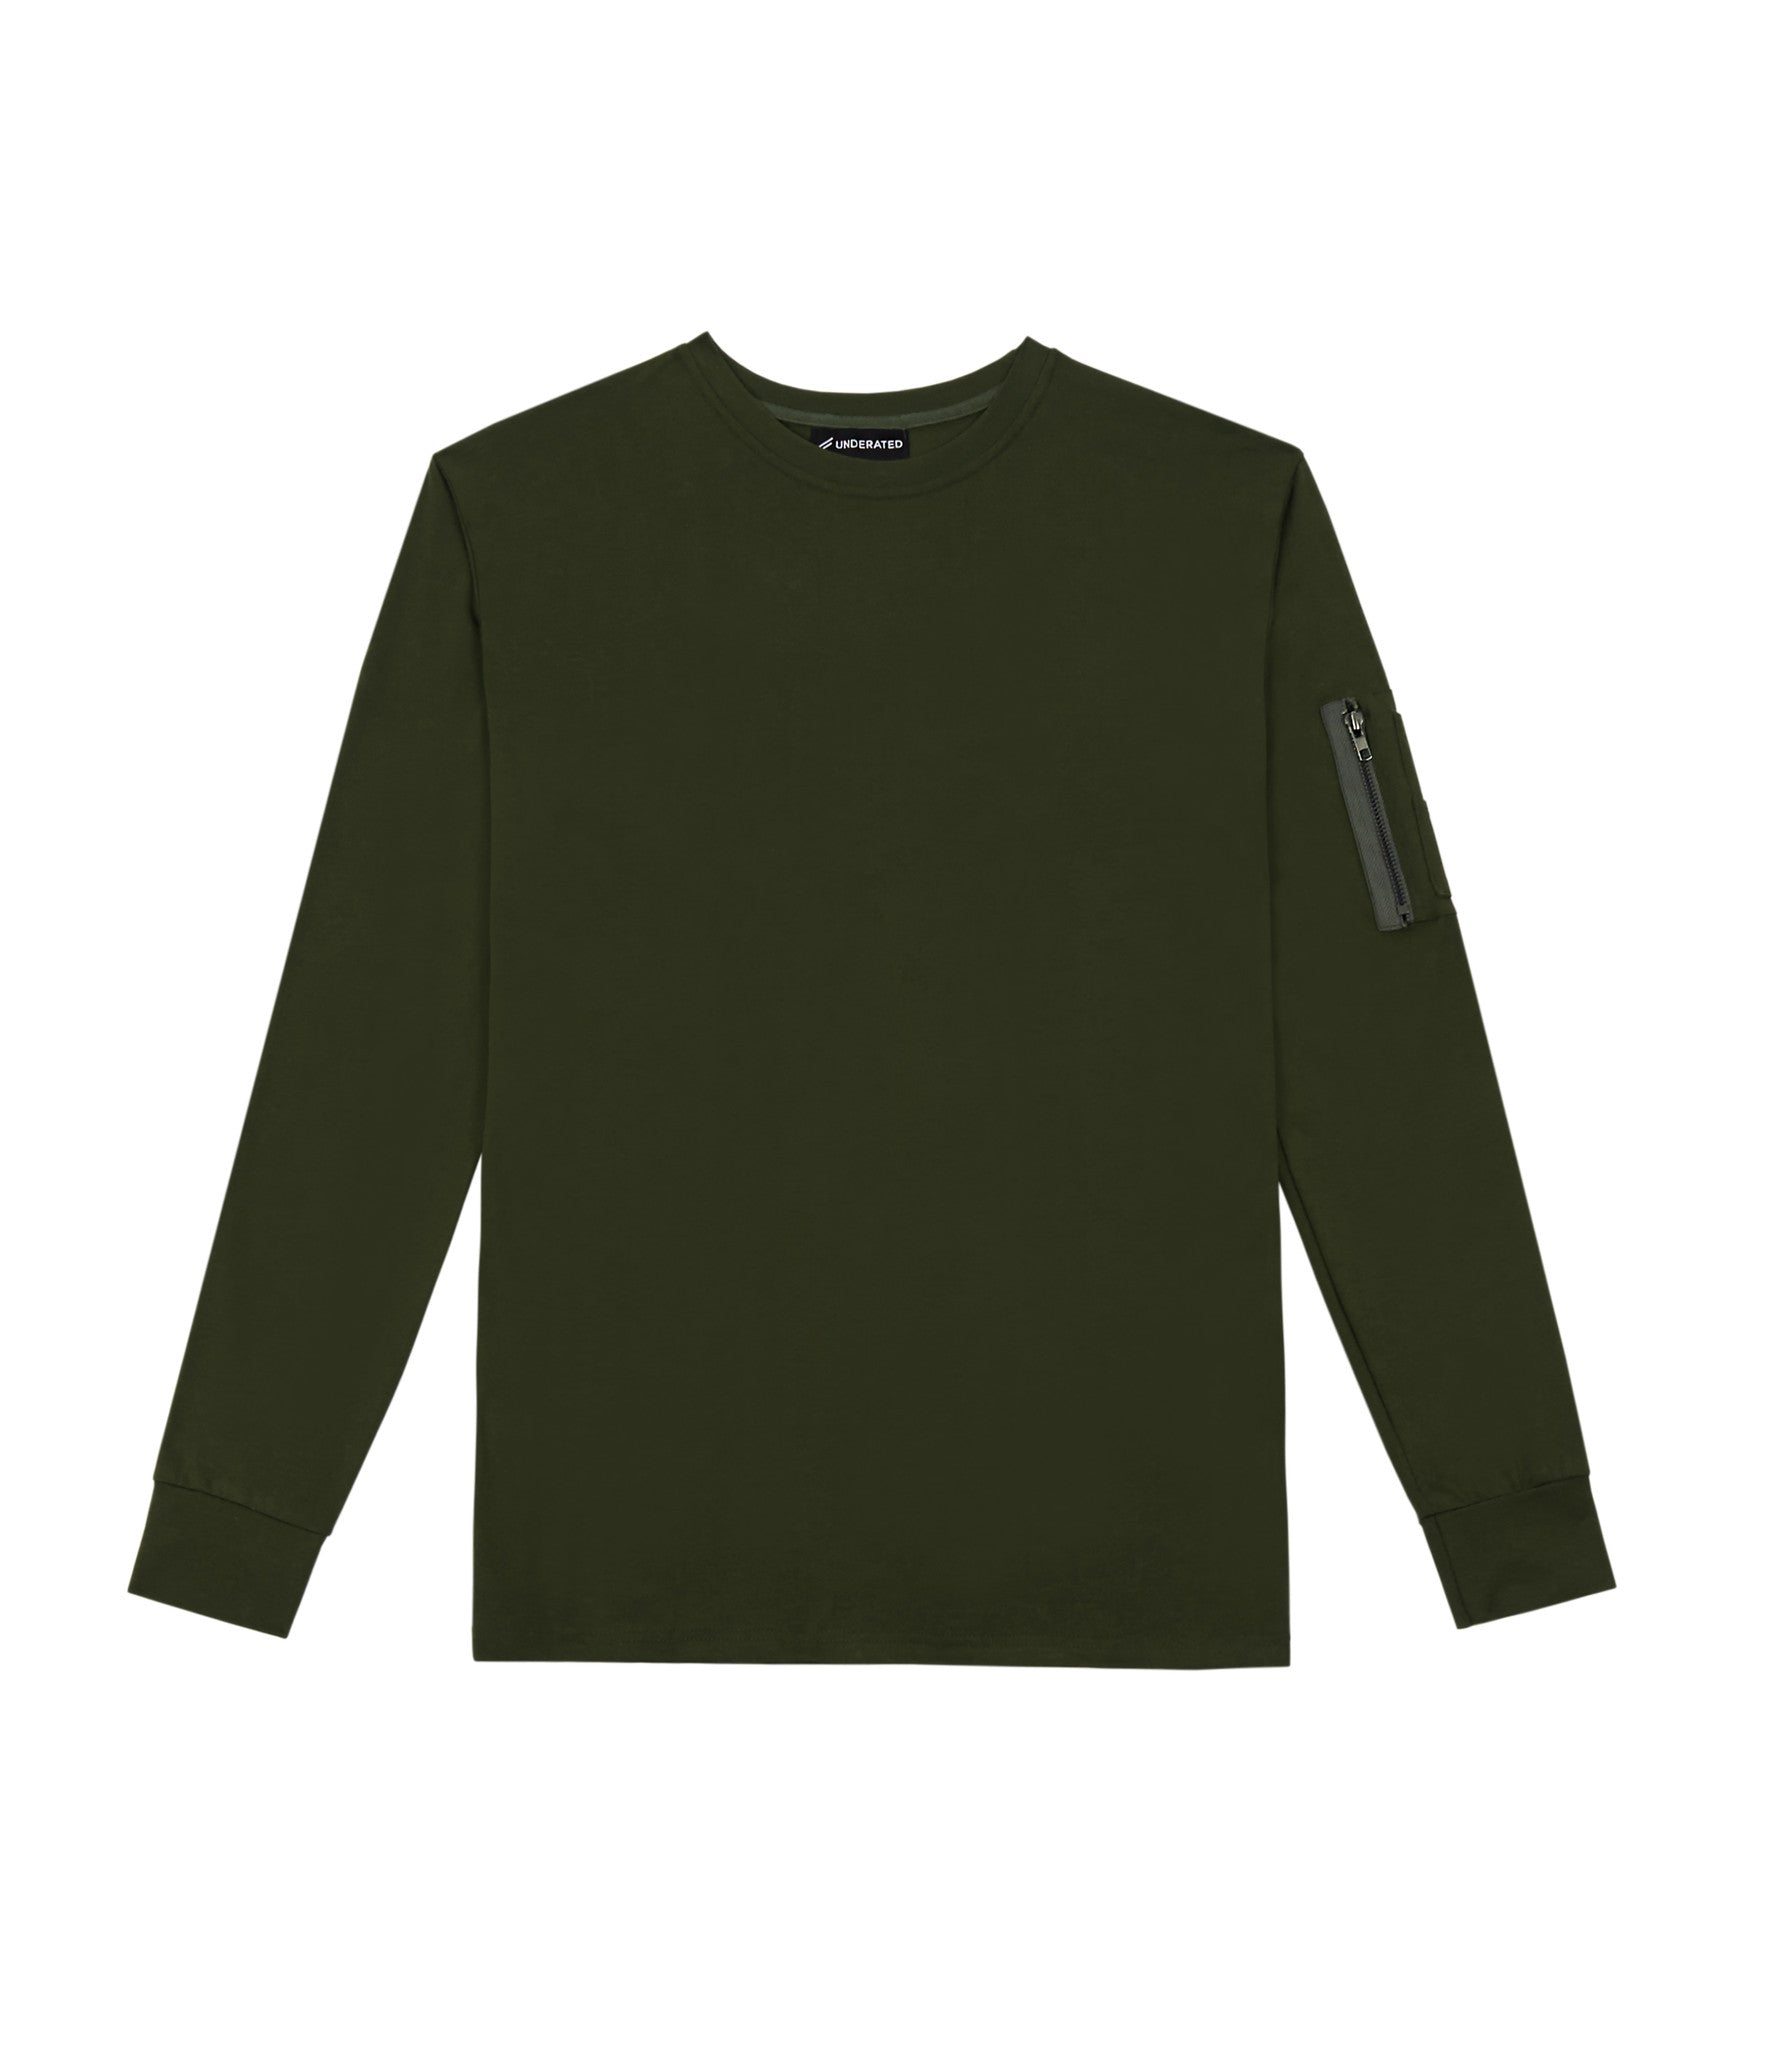 LS303 Utility Long-Sleeve Tee - Olive Green - underated london - underatedco - 1